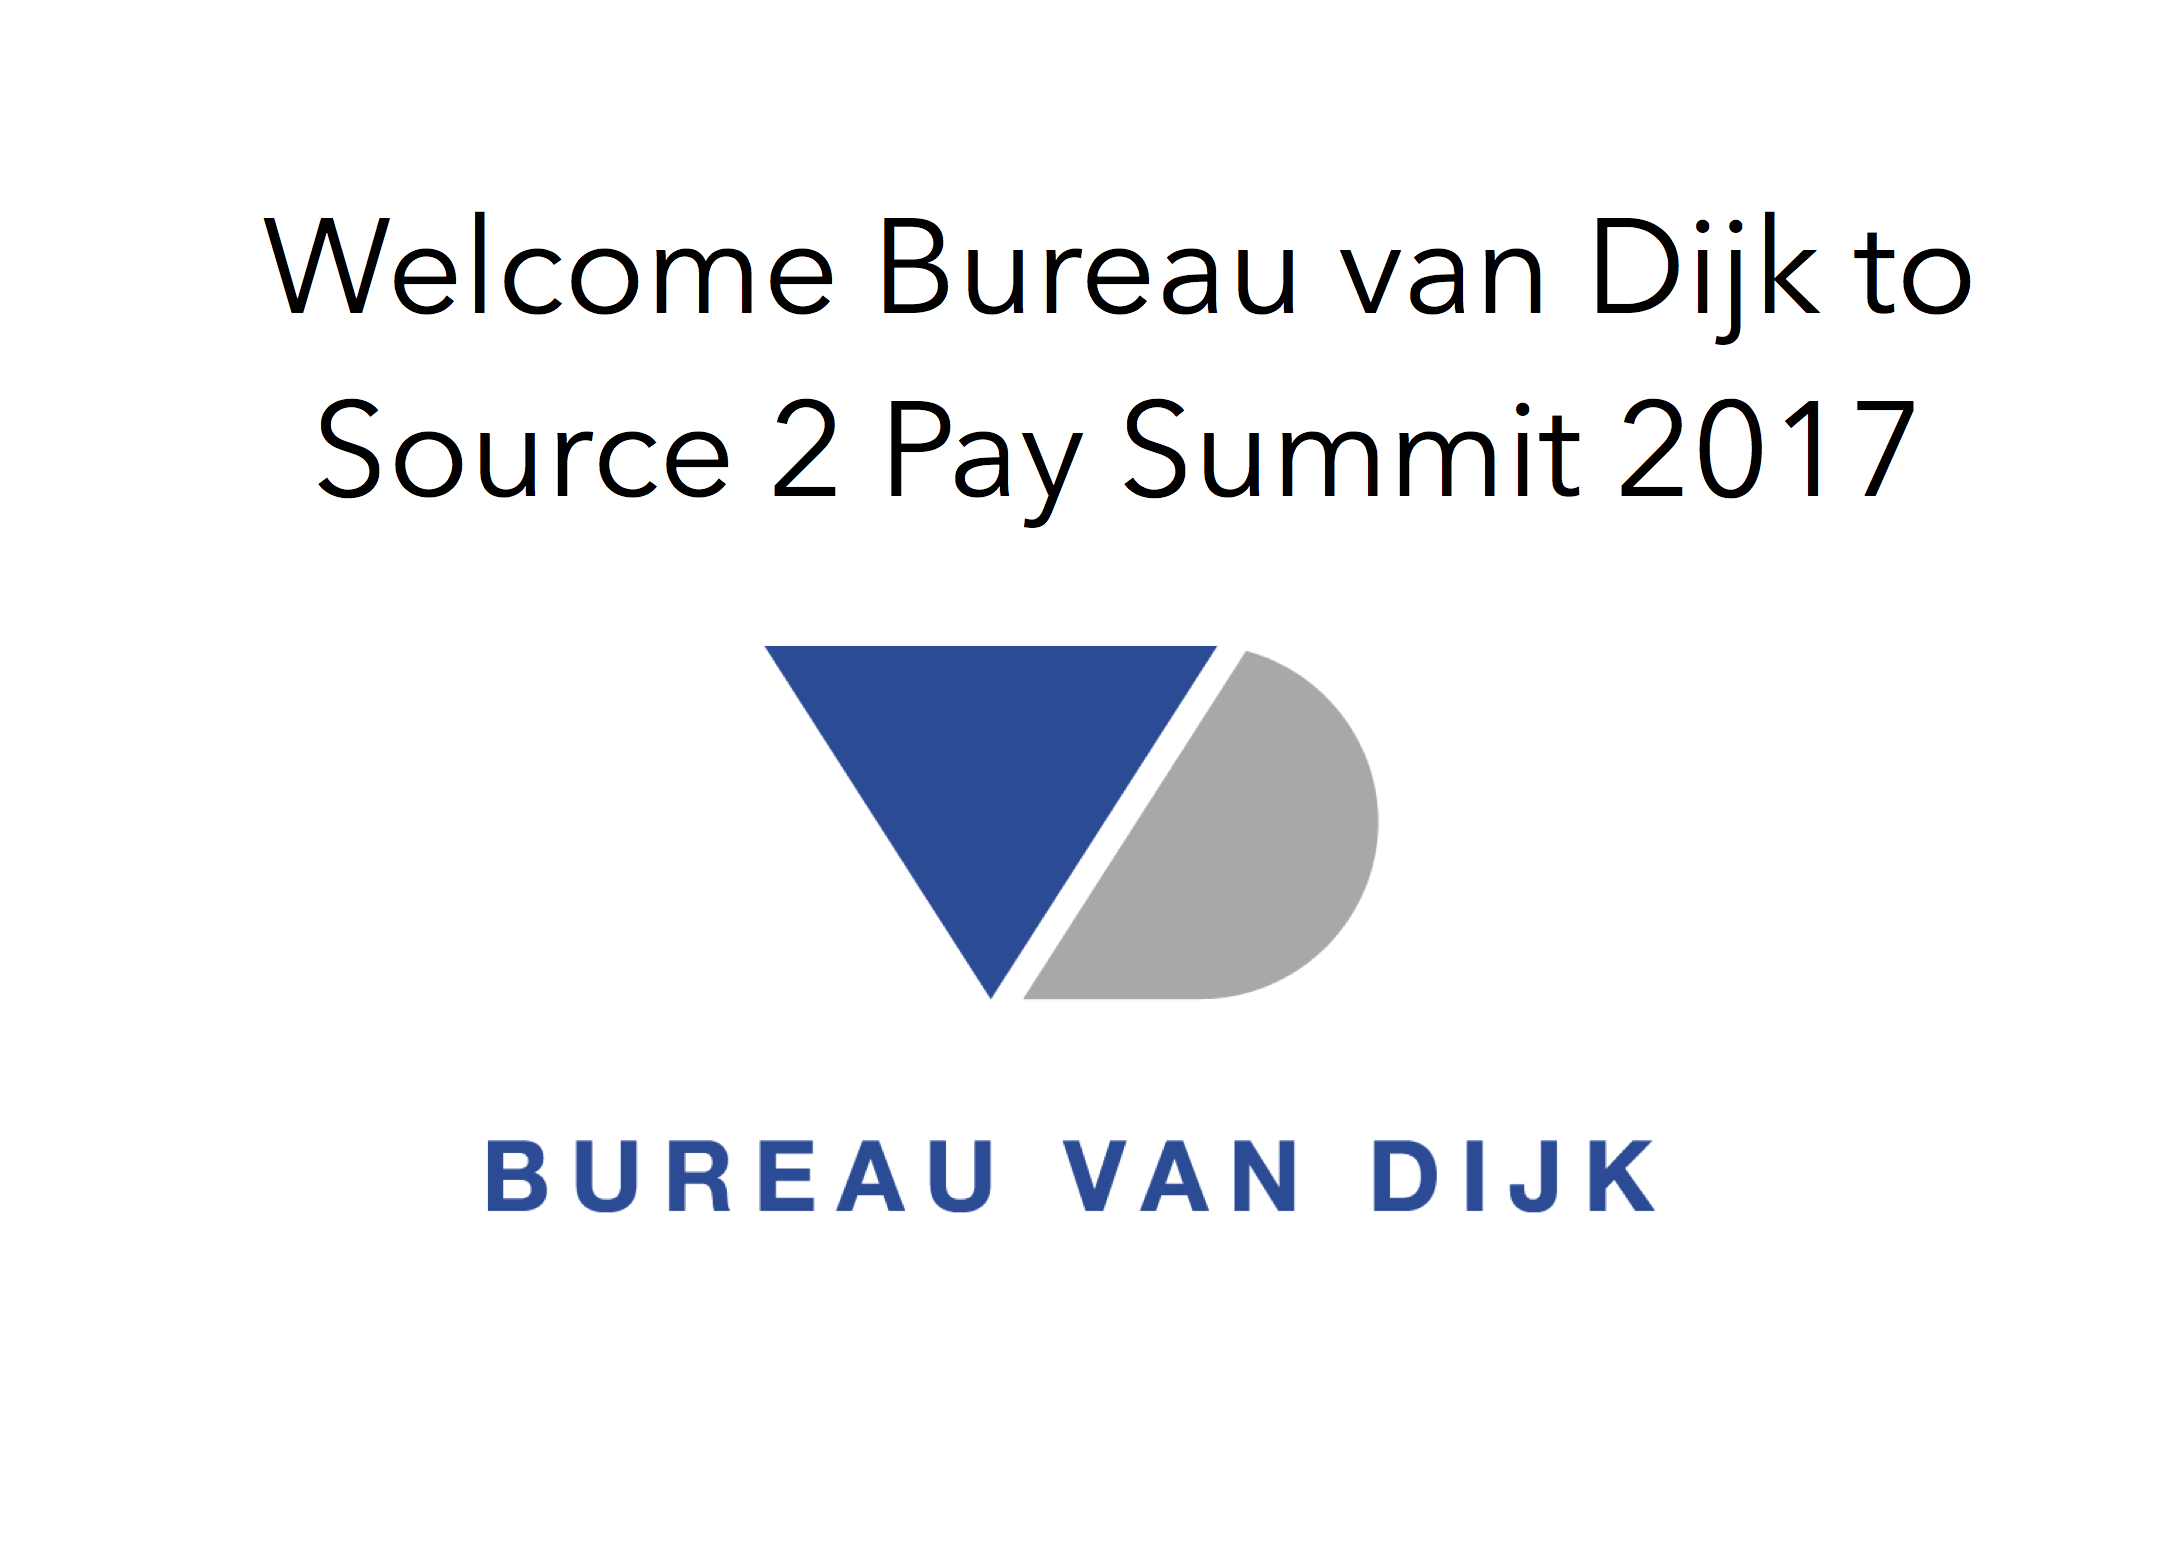 Bureau van dijk to source 2 pay summit 2017 ebg network for Bureau van dijk